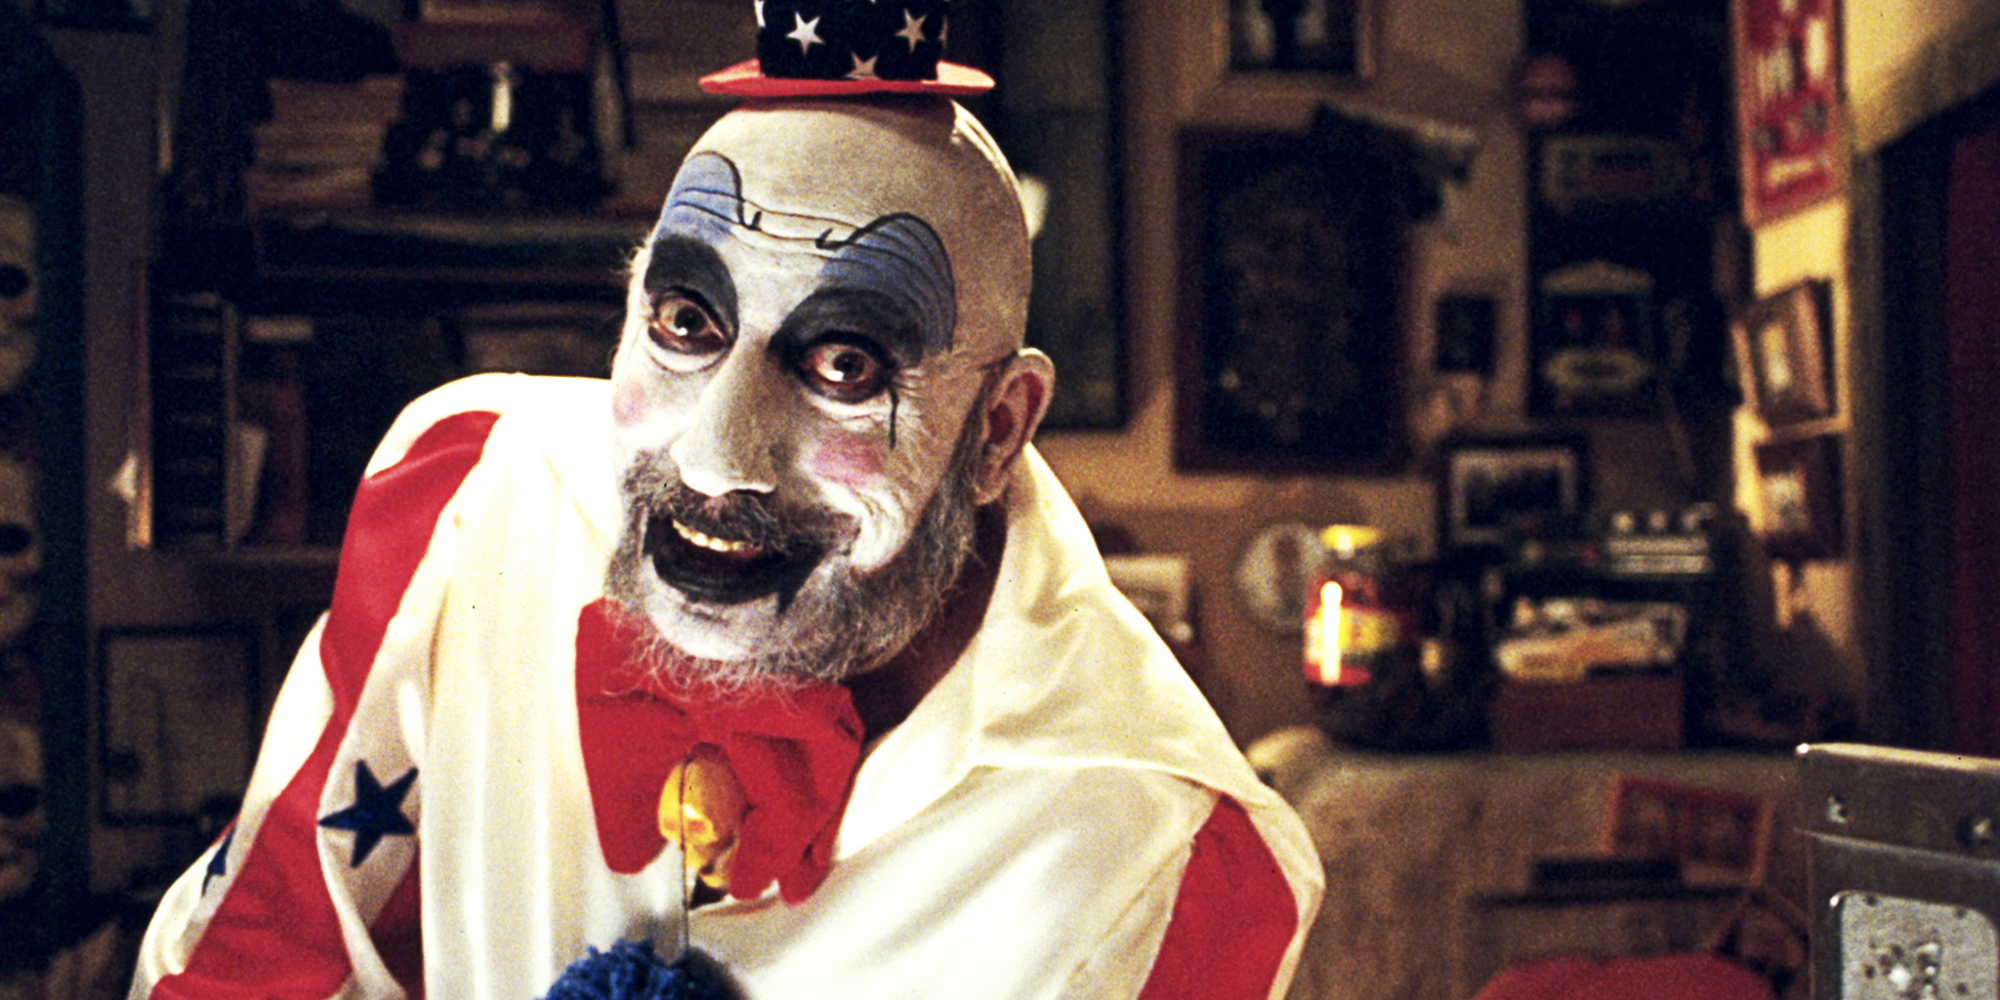 Sid Haig as Captain Spaulding in House of 1000 Corpses (2003)